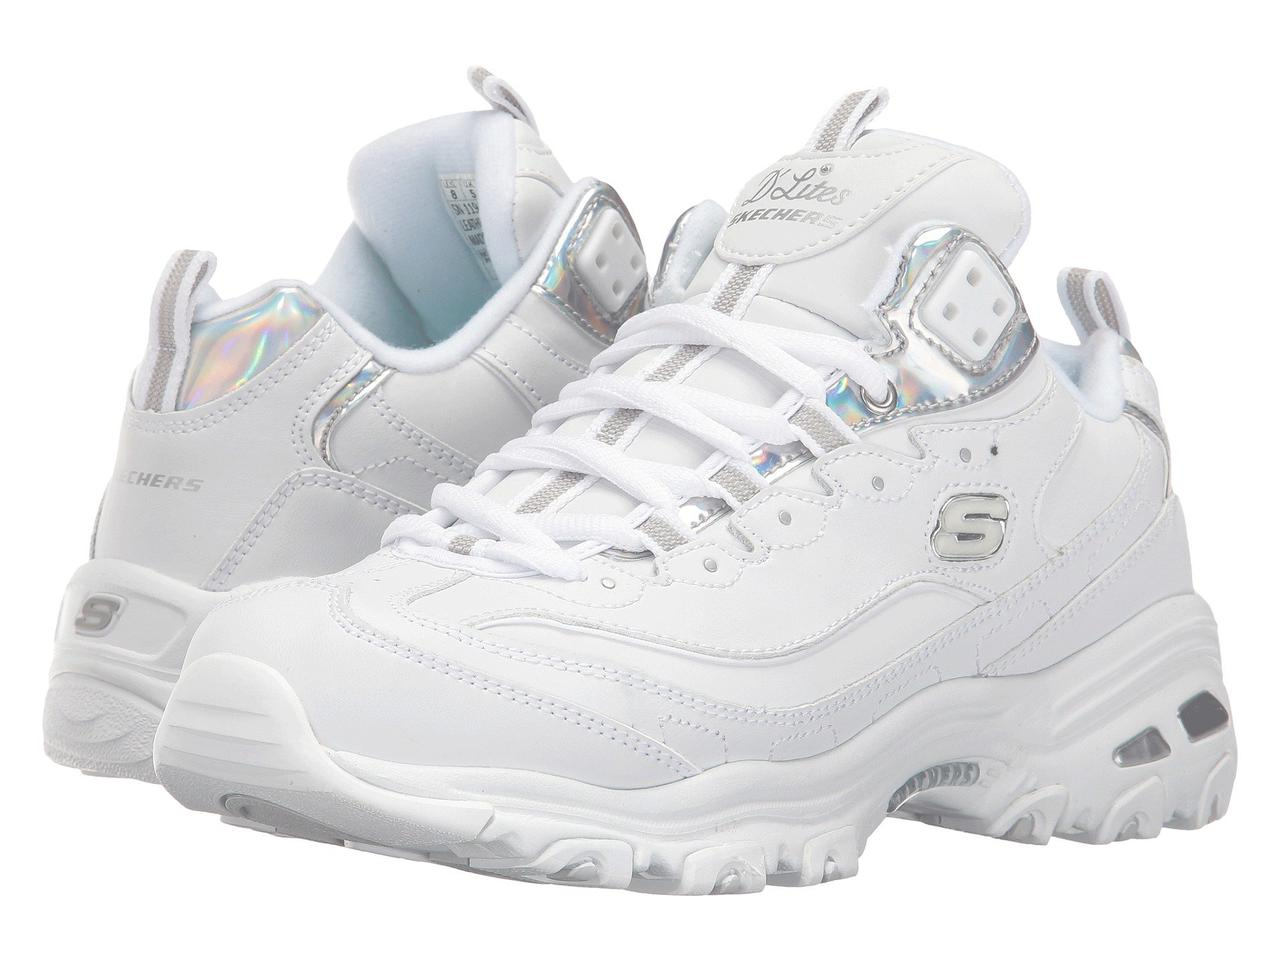 63af5a87e539 Кроссовки SKECHERS D Lites - Style Rethink White Silver - Оригинал ...